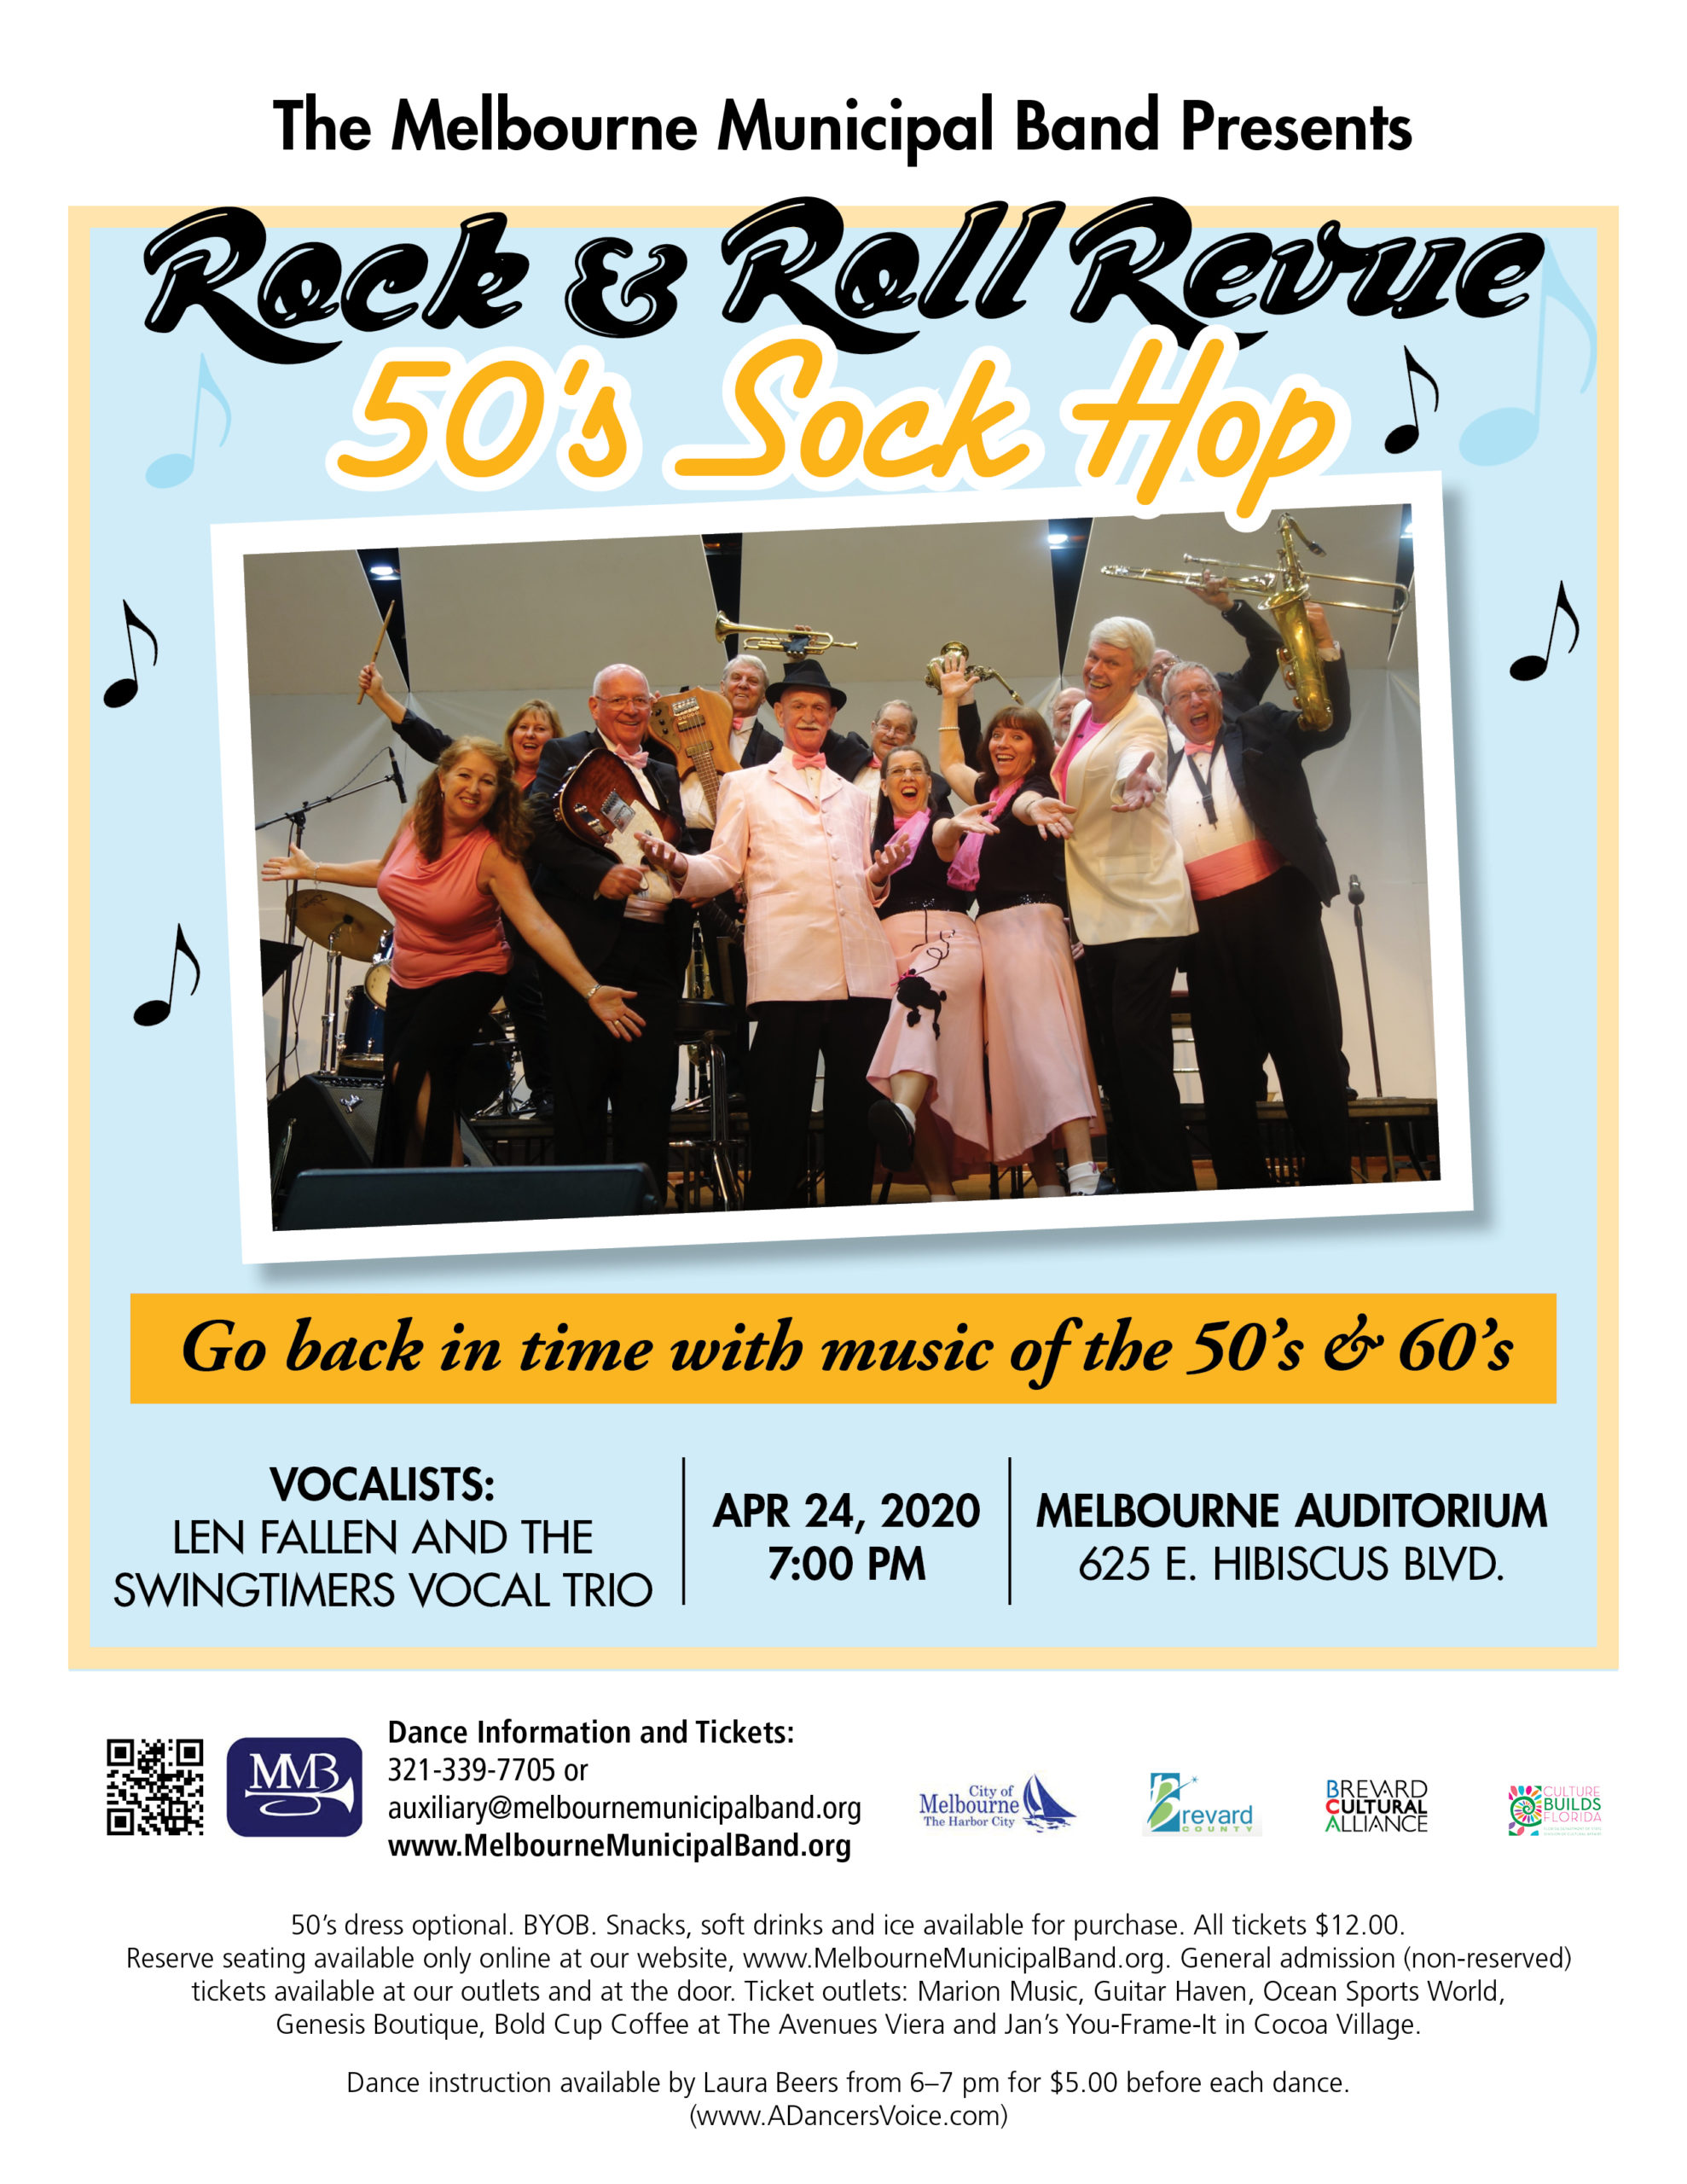 CANCELLED - Rock & Roll Revue 50's Sock Hop presented by The Melbourne Municipal Band